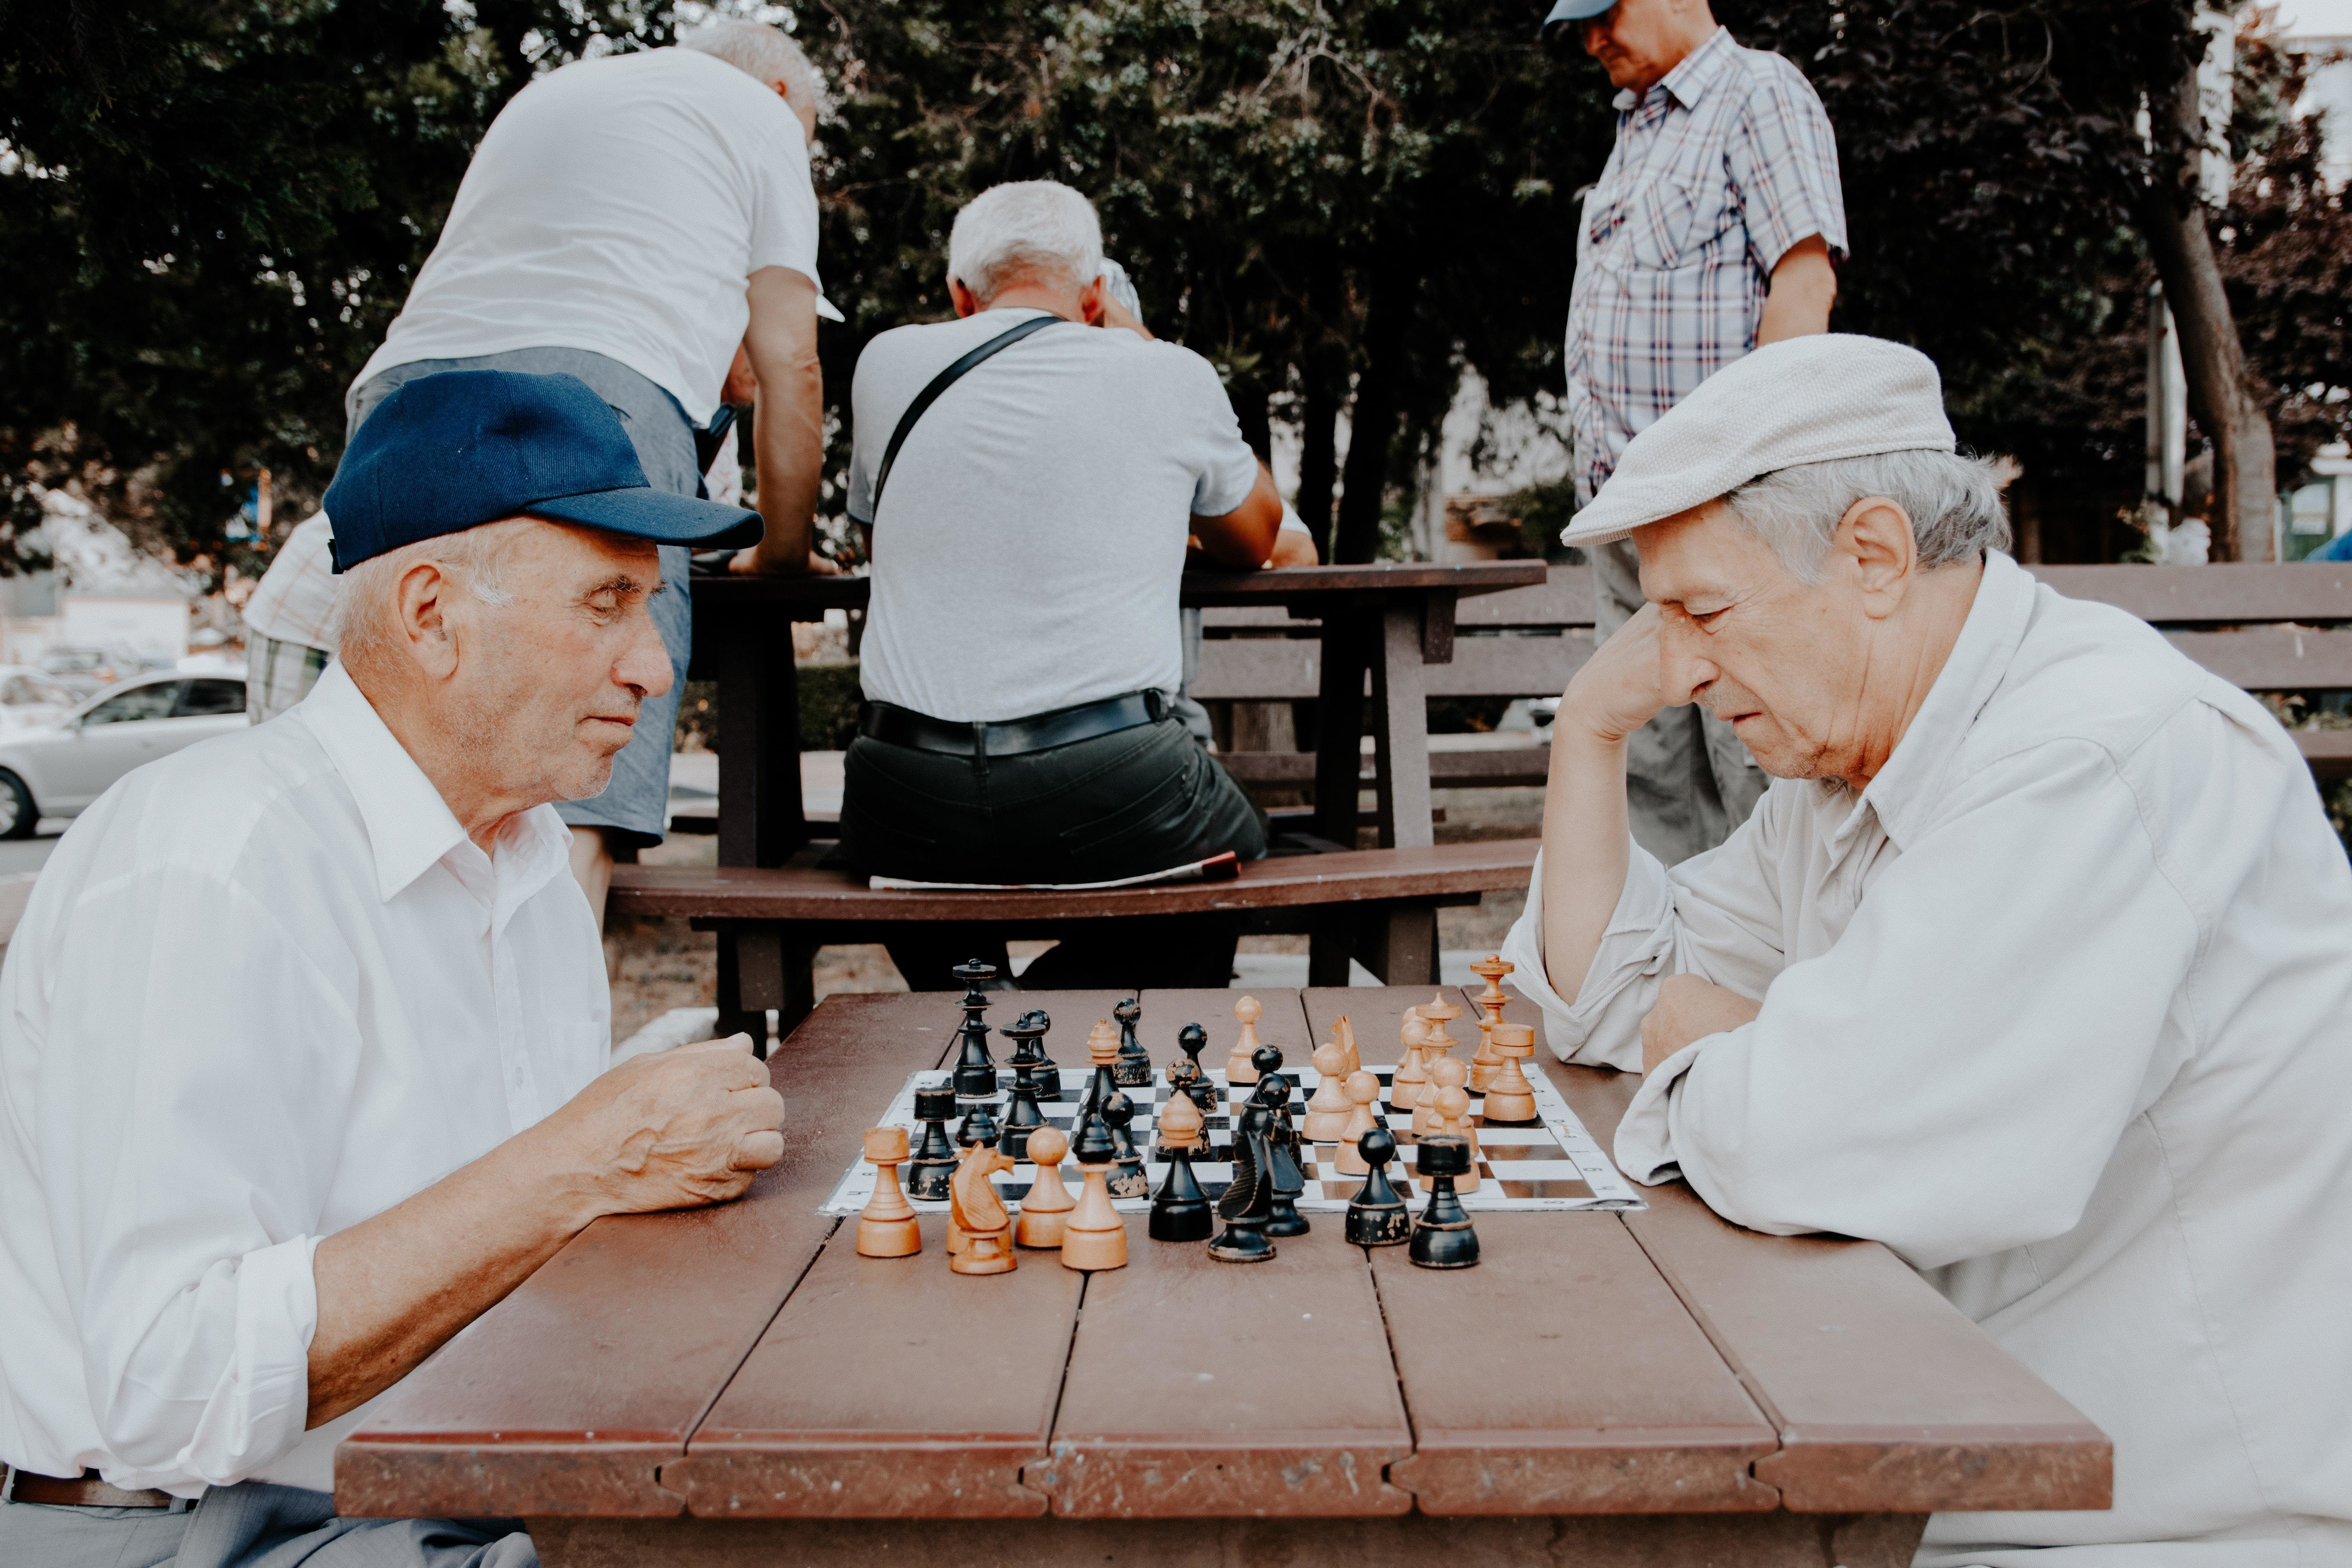 A multistakeholder approach can improve our quality of life in old age